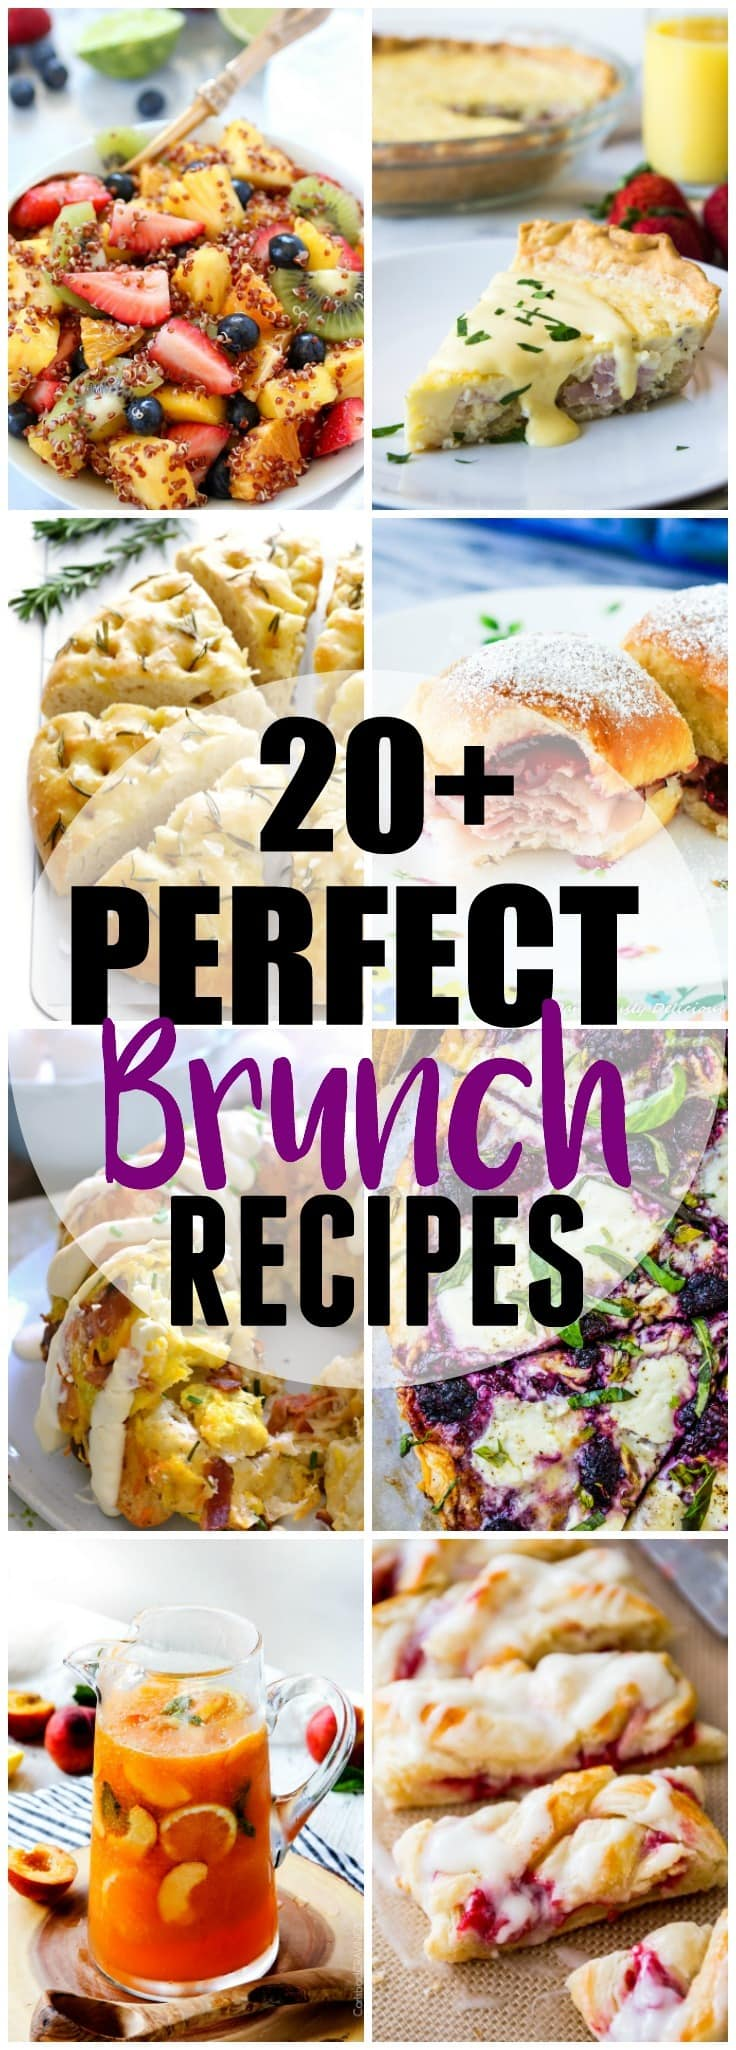 20+ Perfect Brunch Recipes!  Enjoy the magical meal of brunch with these 20+ recipes featuring breakfast casseroles, fruit salads, egg dishes, pancakes, waffles and more! via @jennikolaus